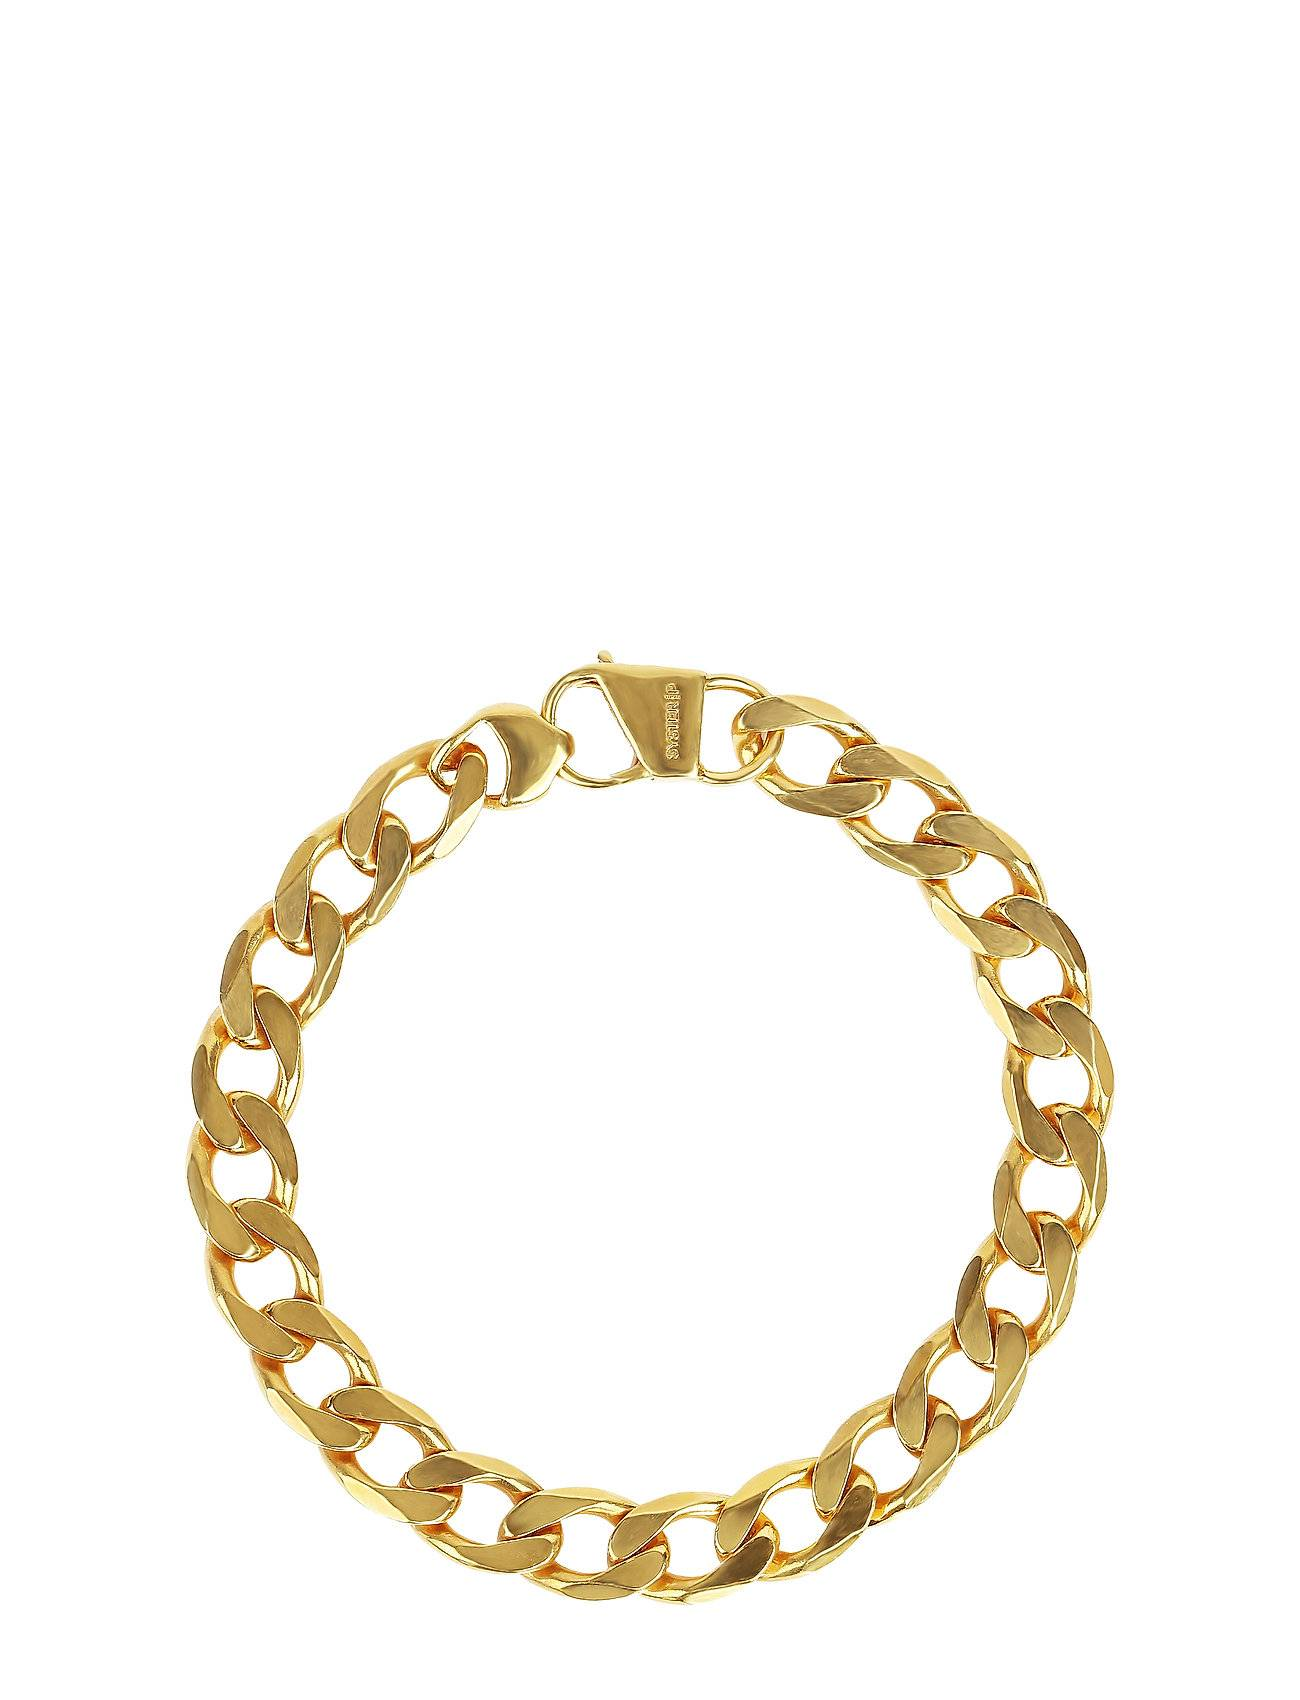 Syster P Links Curb Chain Bracelet Gold Accessories Jewellery Bracelets Chain Bracelets Kulta Syster P